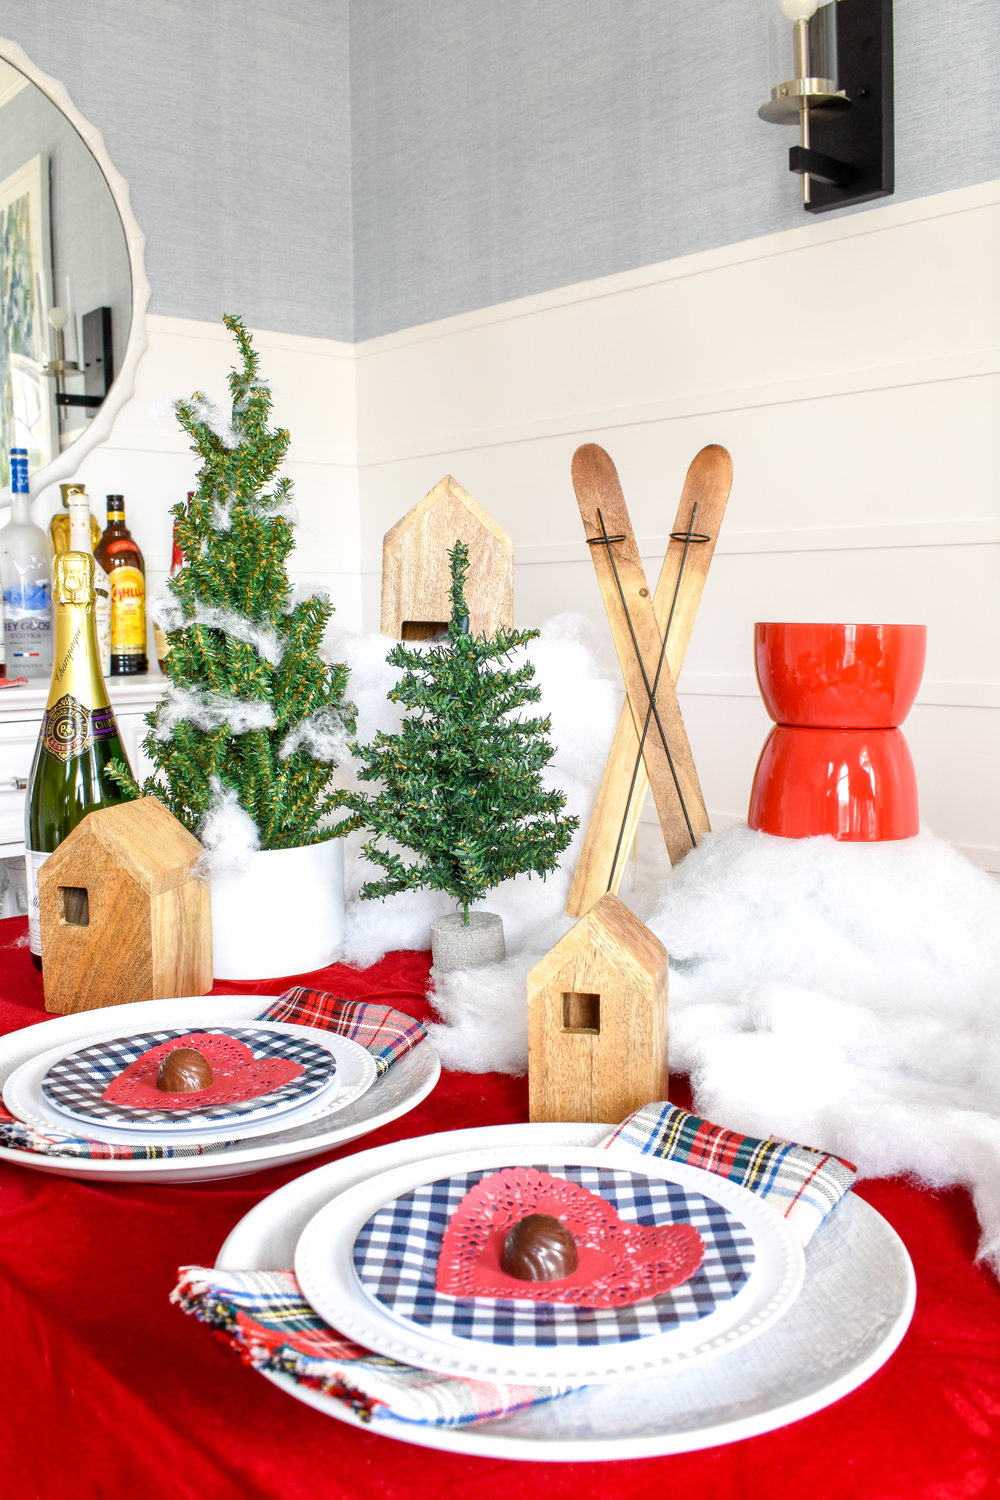 Easy Valentine's Day Ideas | A Romantic Ski Chalet: How To Re-Use Your Christmas Decor for Valentine's Day  I've left my Christmas decor up a little longer and really stretched its life by transferring it into this adorable - and romantic - chalet tablescape. Today I'm showing you how I DIYed it and how you can too! #valentinesday #chaletstyle #wintercabin